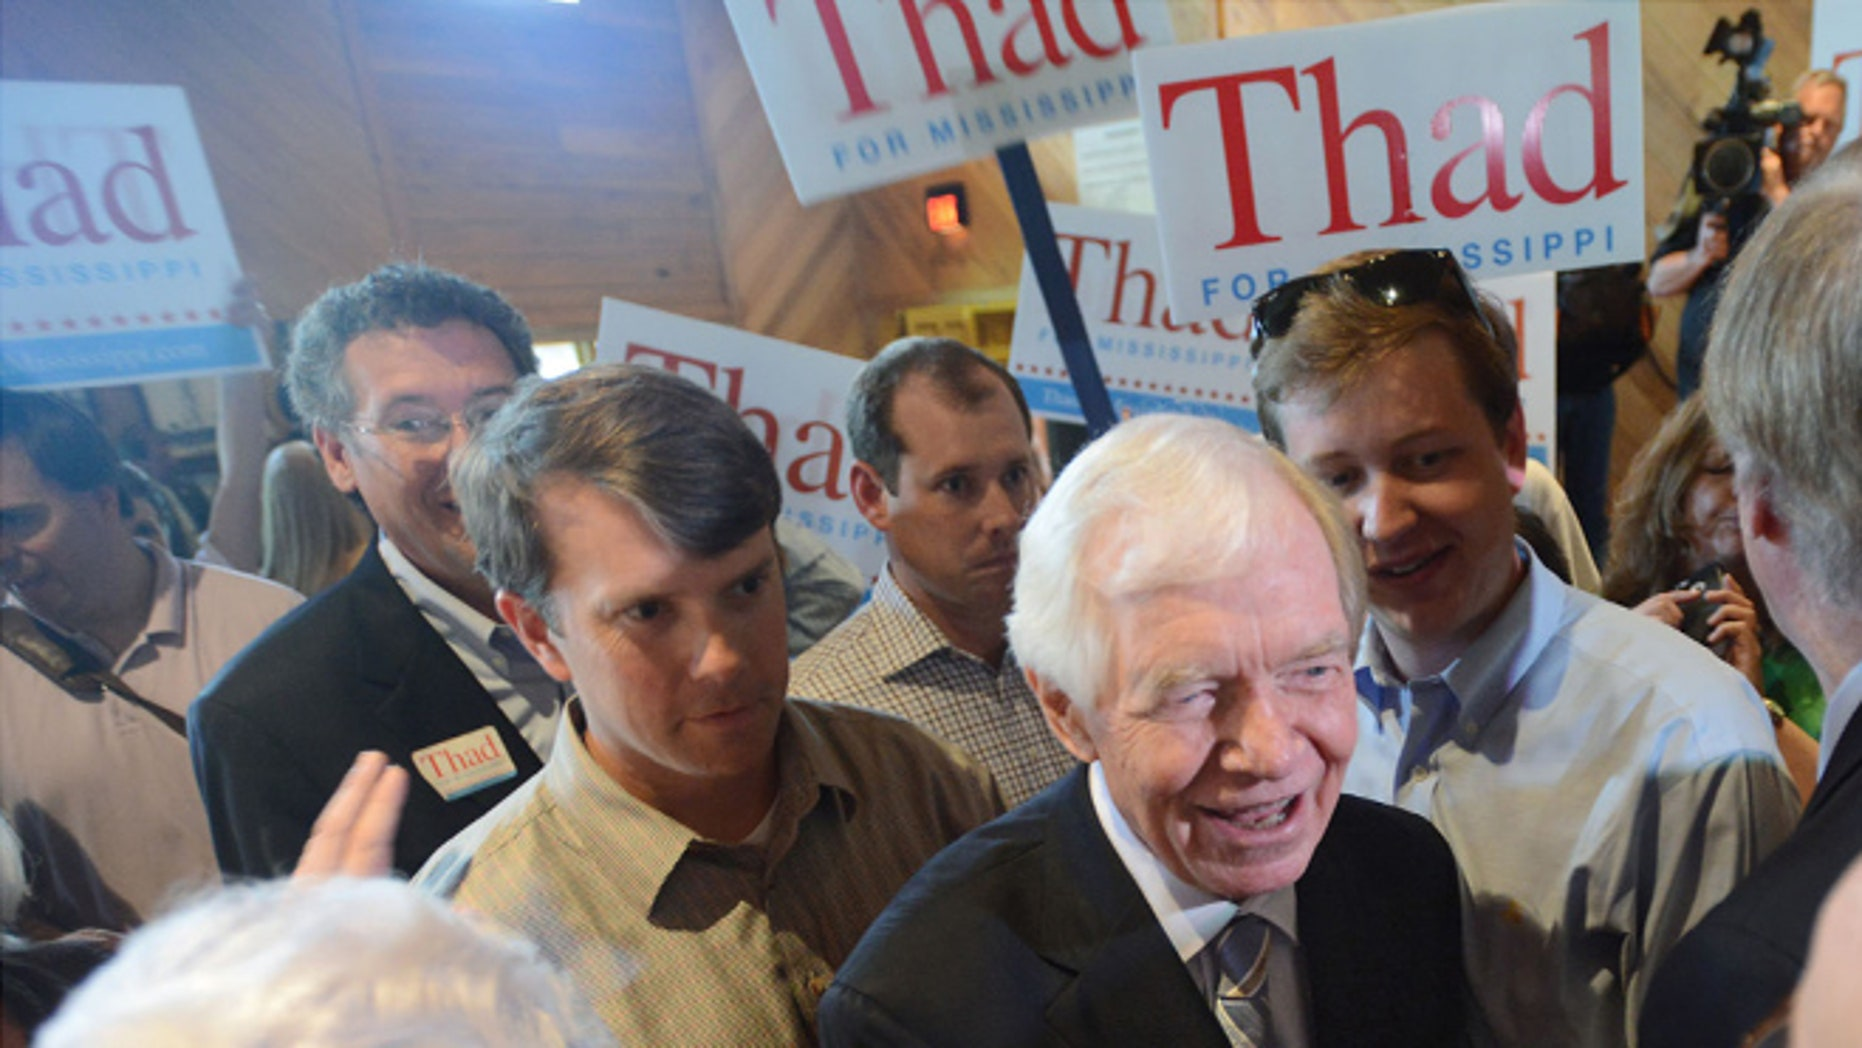 Monday, June 2, 2014: Sen. Thad Cochran, R-Miss., at a pre-election rally at the Mississippi Agriculture and Forestry Museum in Jackson, Miss.